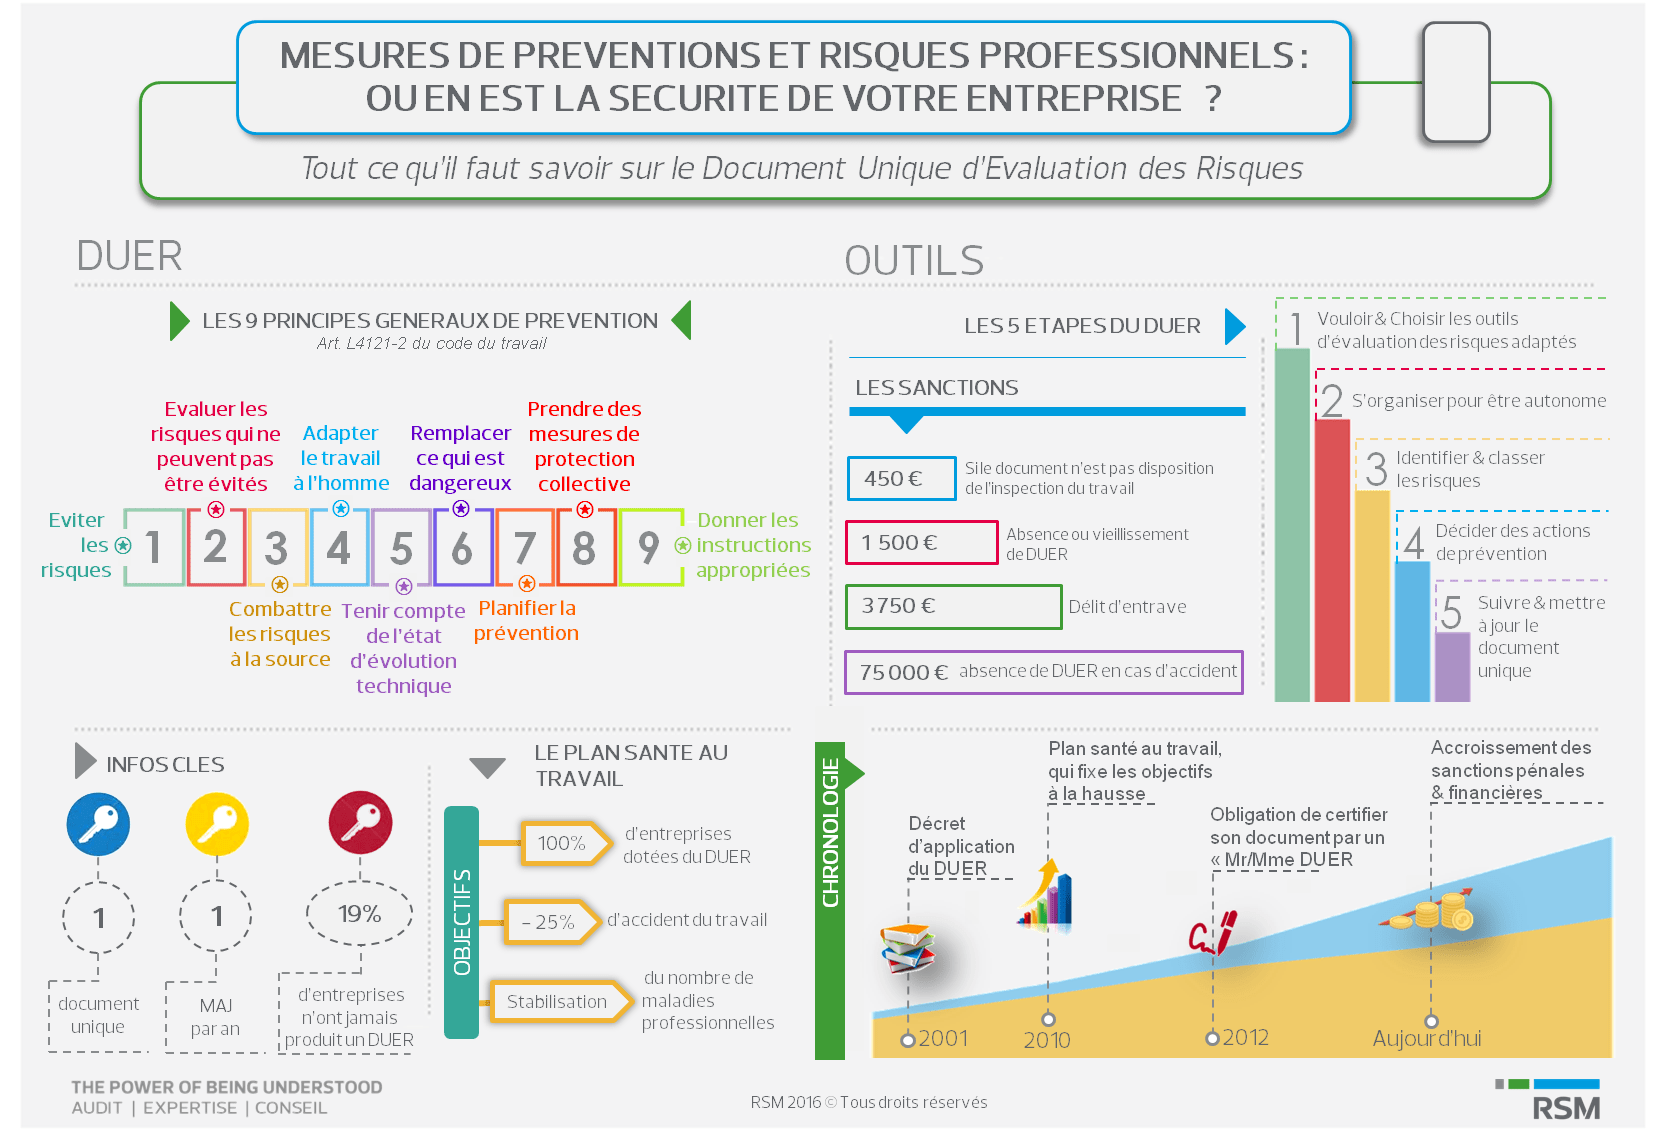 006-infographique_duer.png